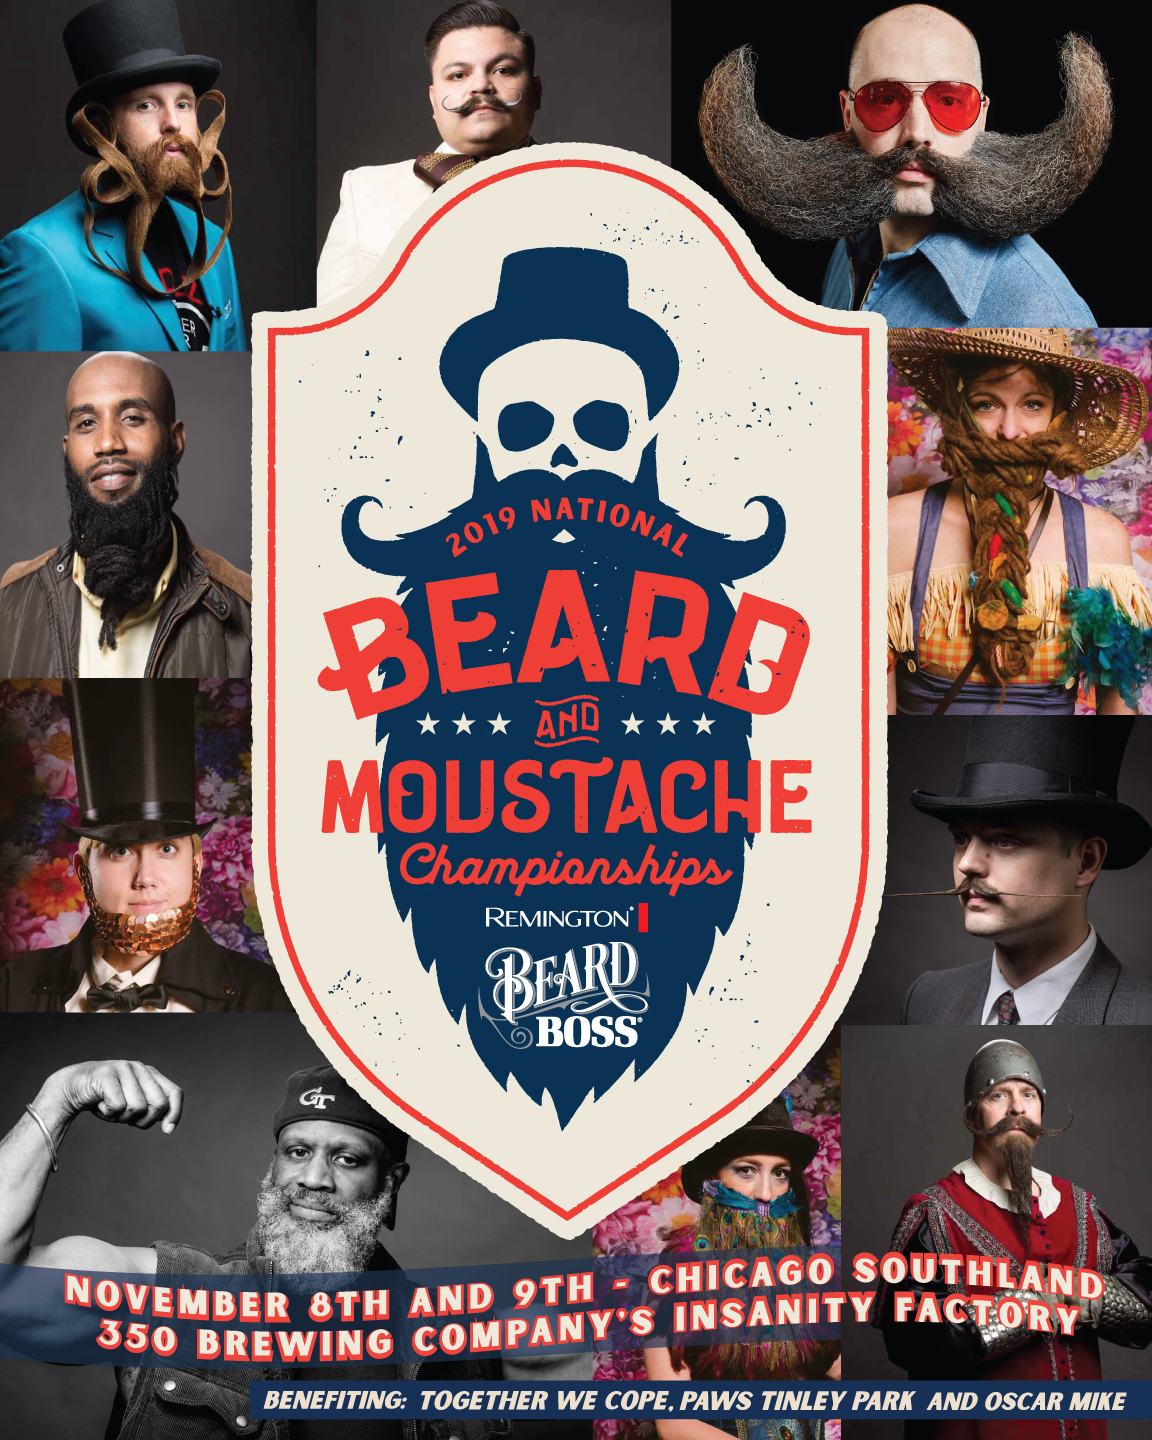 More info on the National Beard and Moustache Championships can be found  HERE.